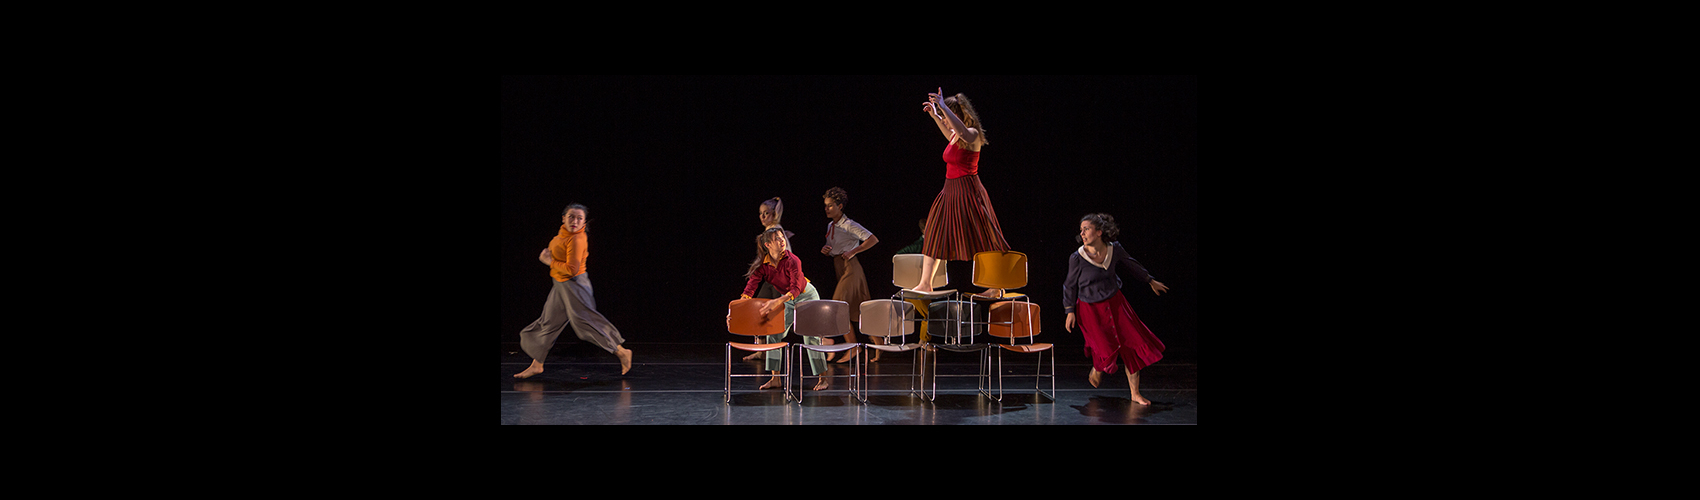 Shrinking Violet — Choreography: Rachael Lincoln / Costume: Michelle Lesniak / Photo: Tim Summers